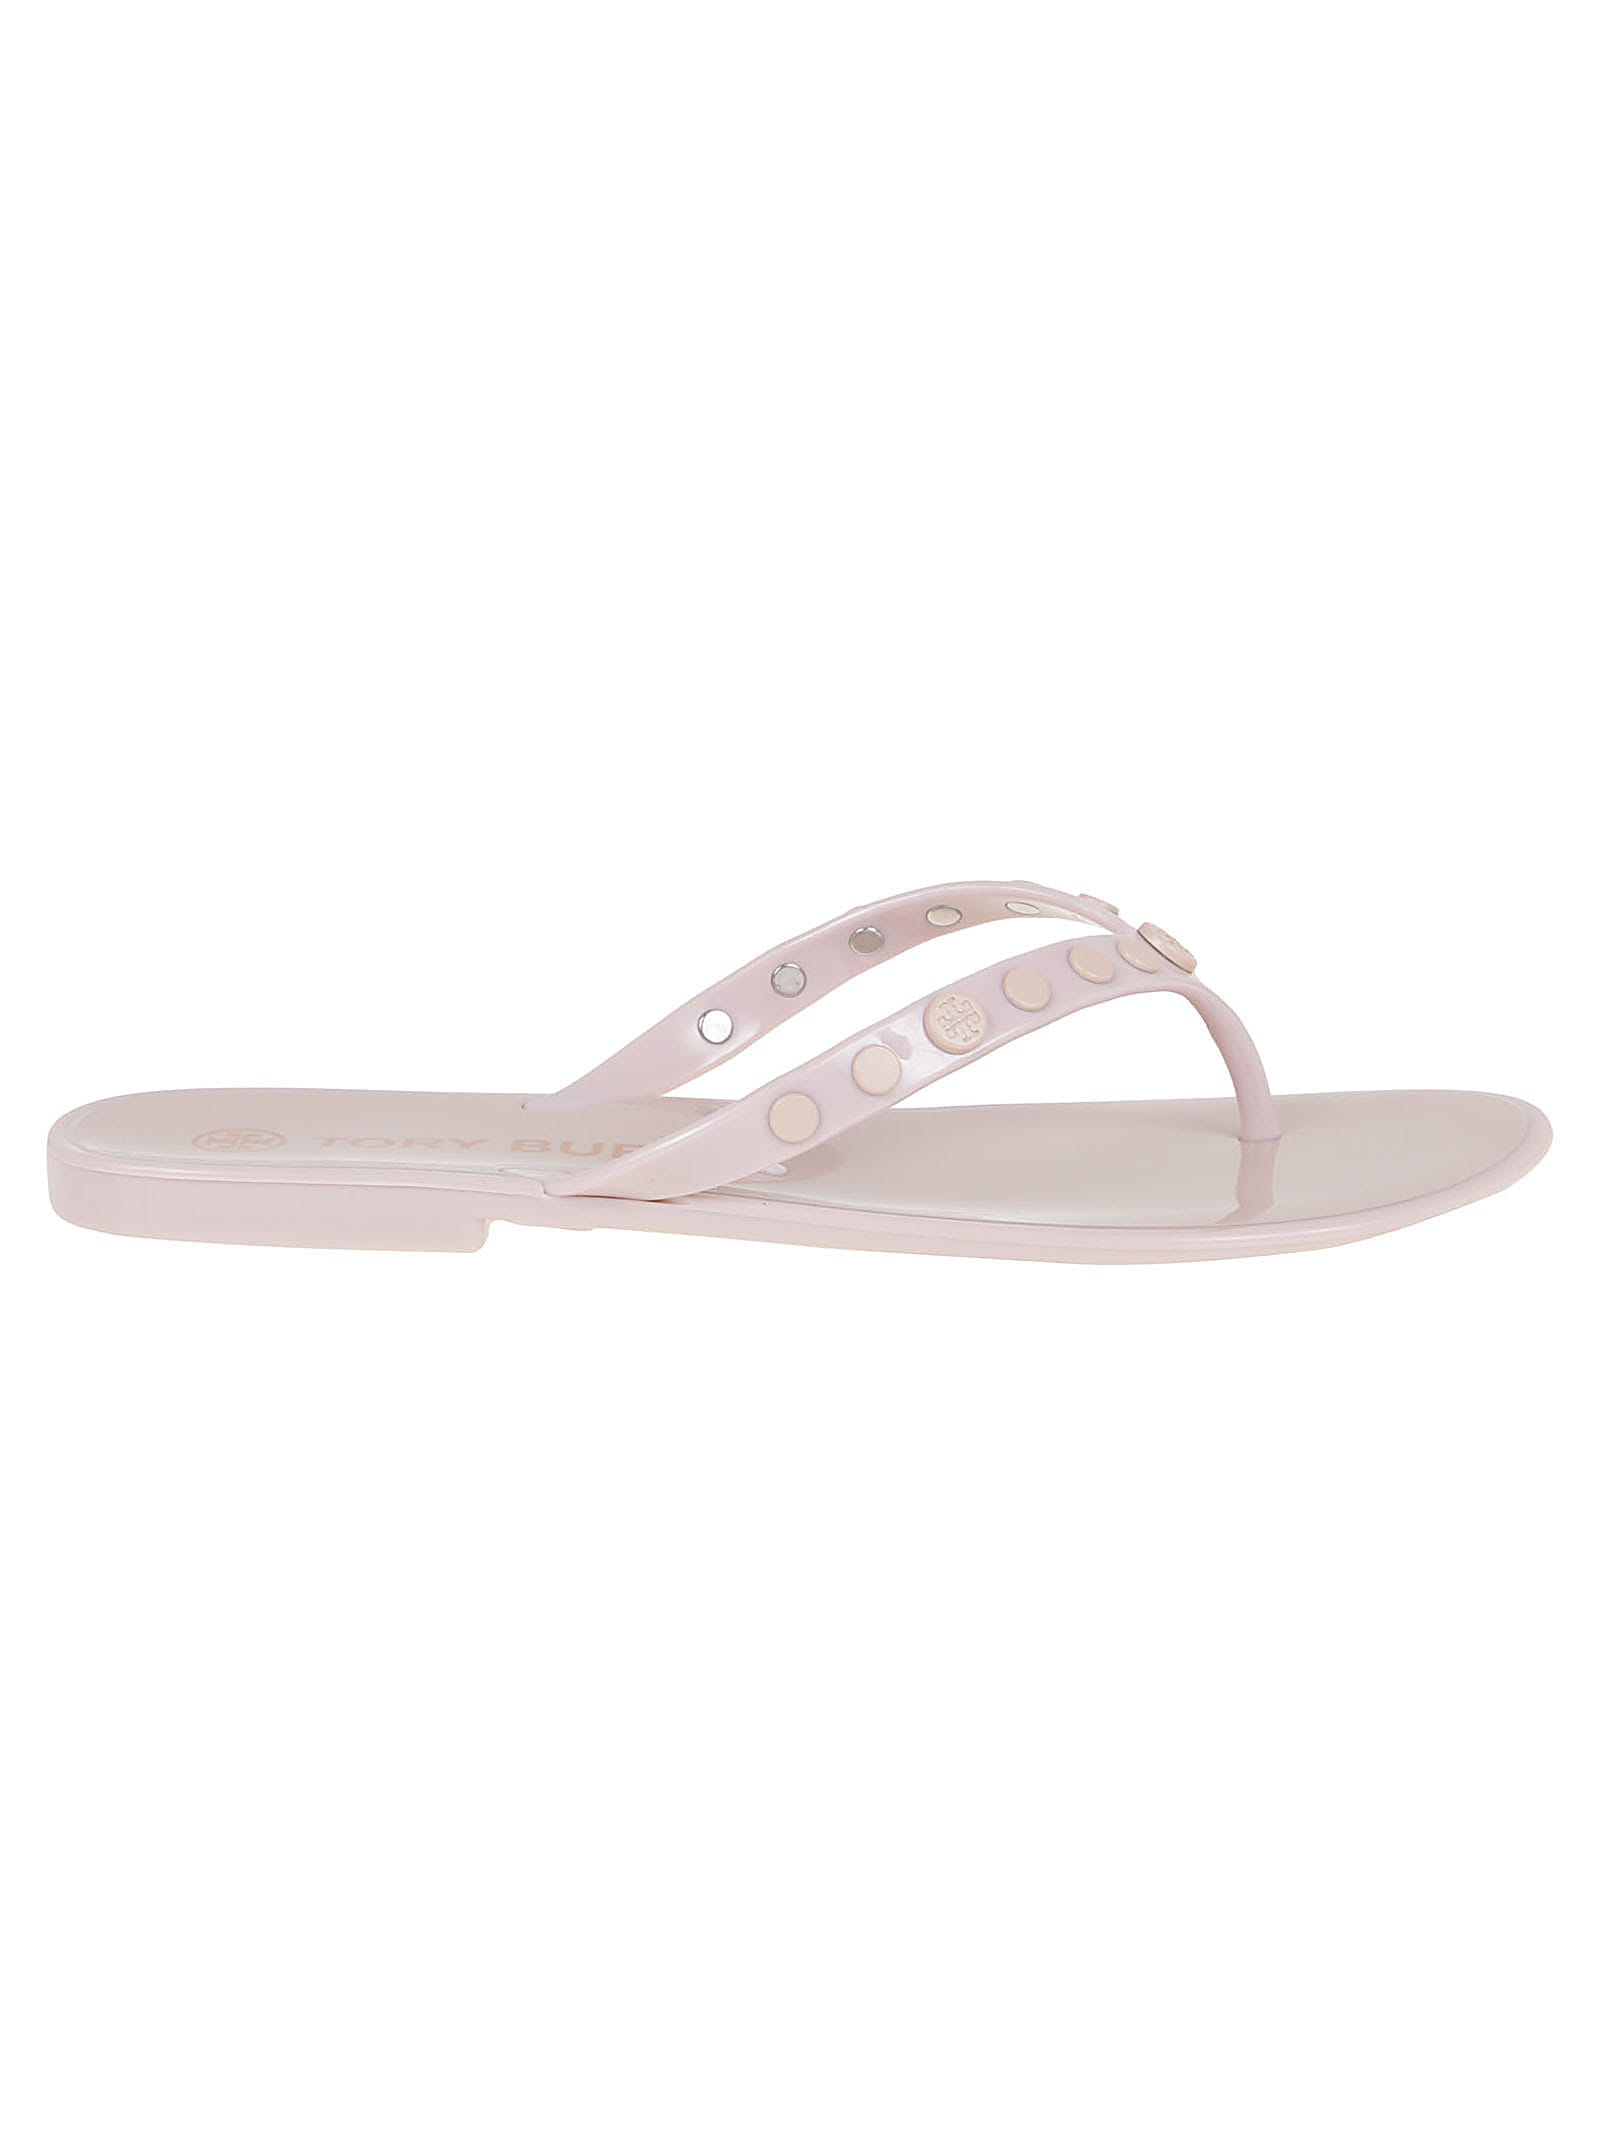 Buy Tory Burch Studded Jelly online, shop Tory Burch shoes with free shipping